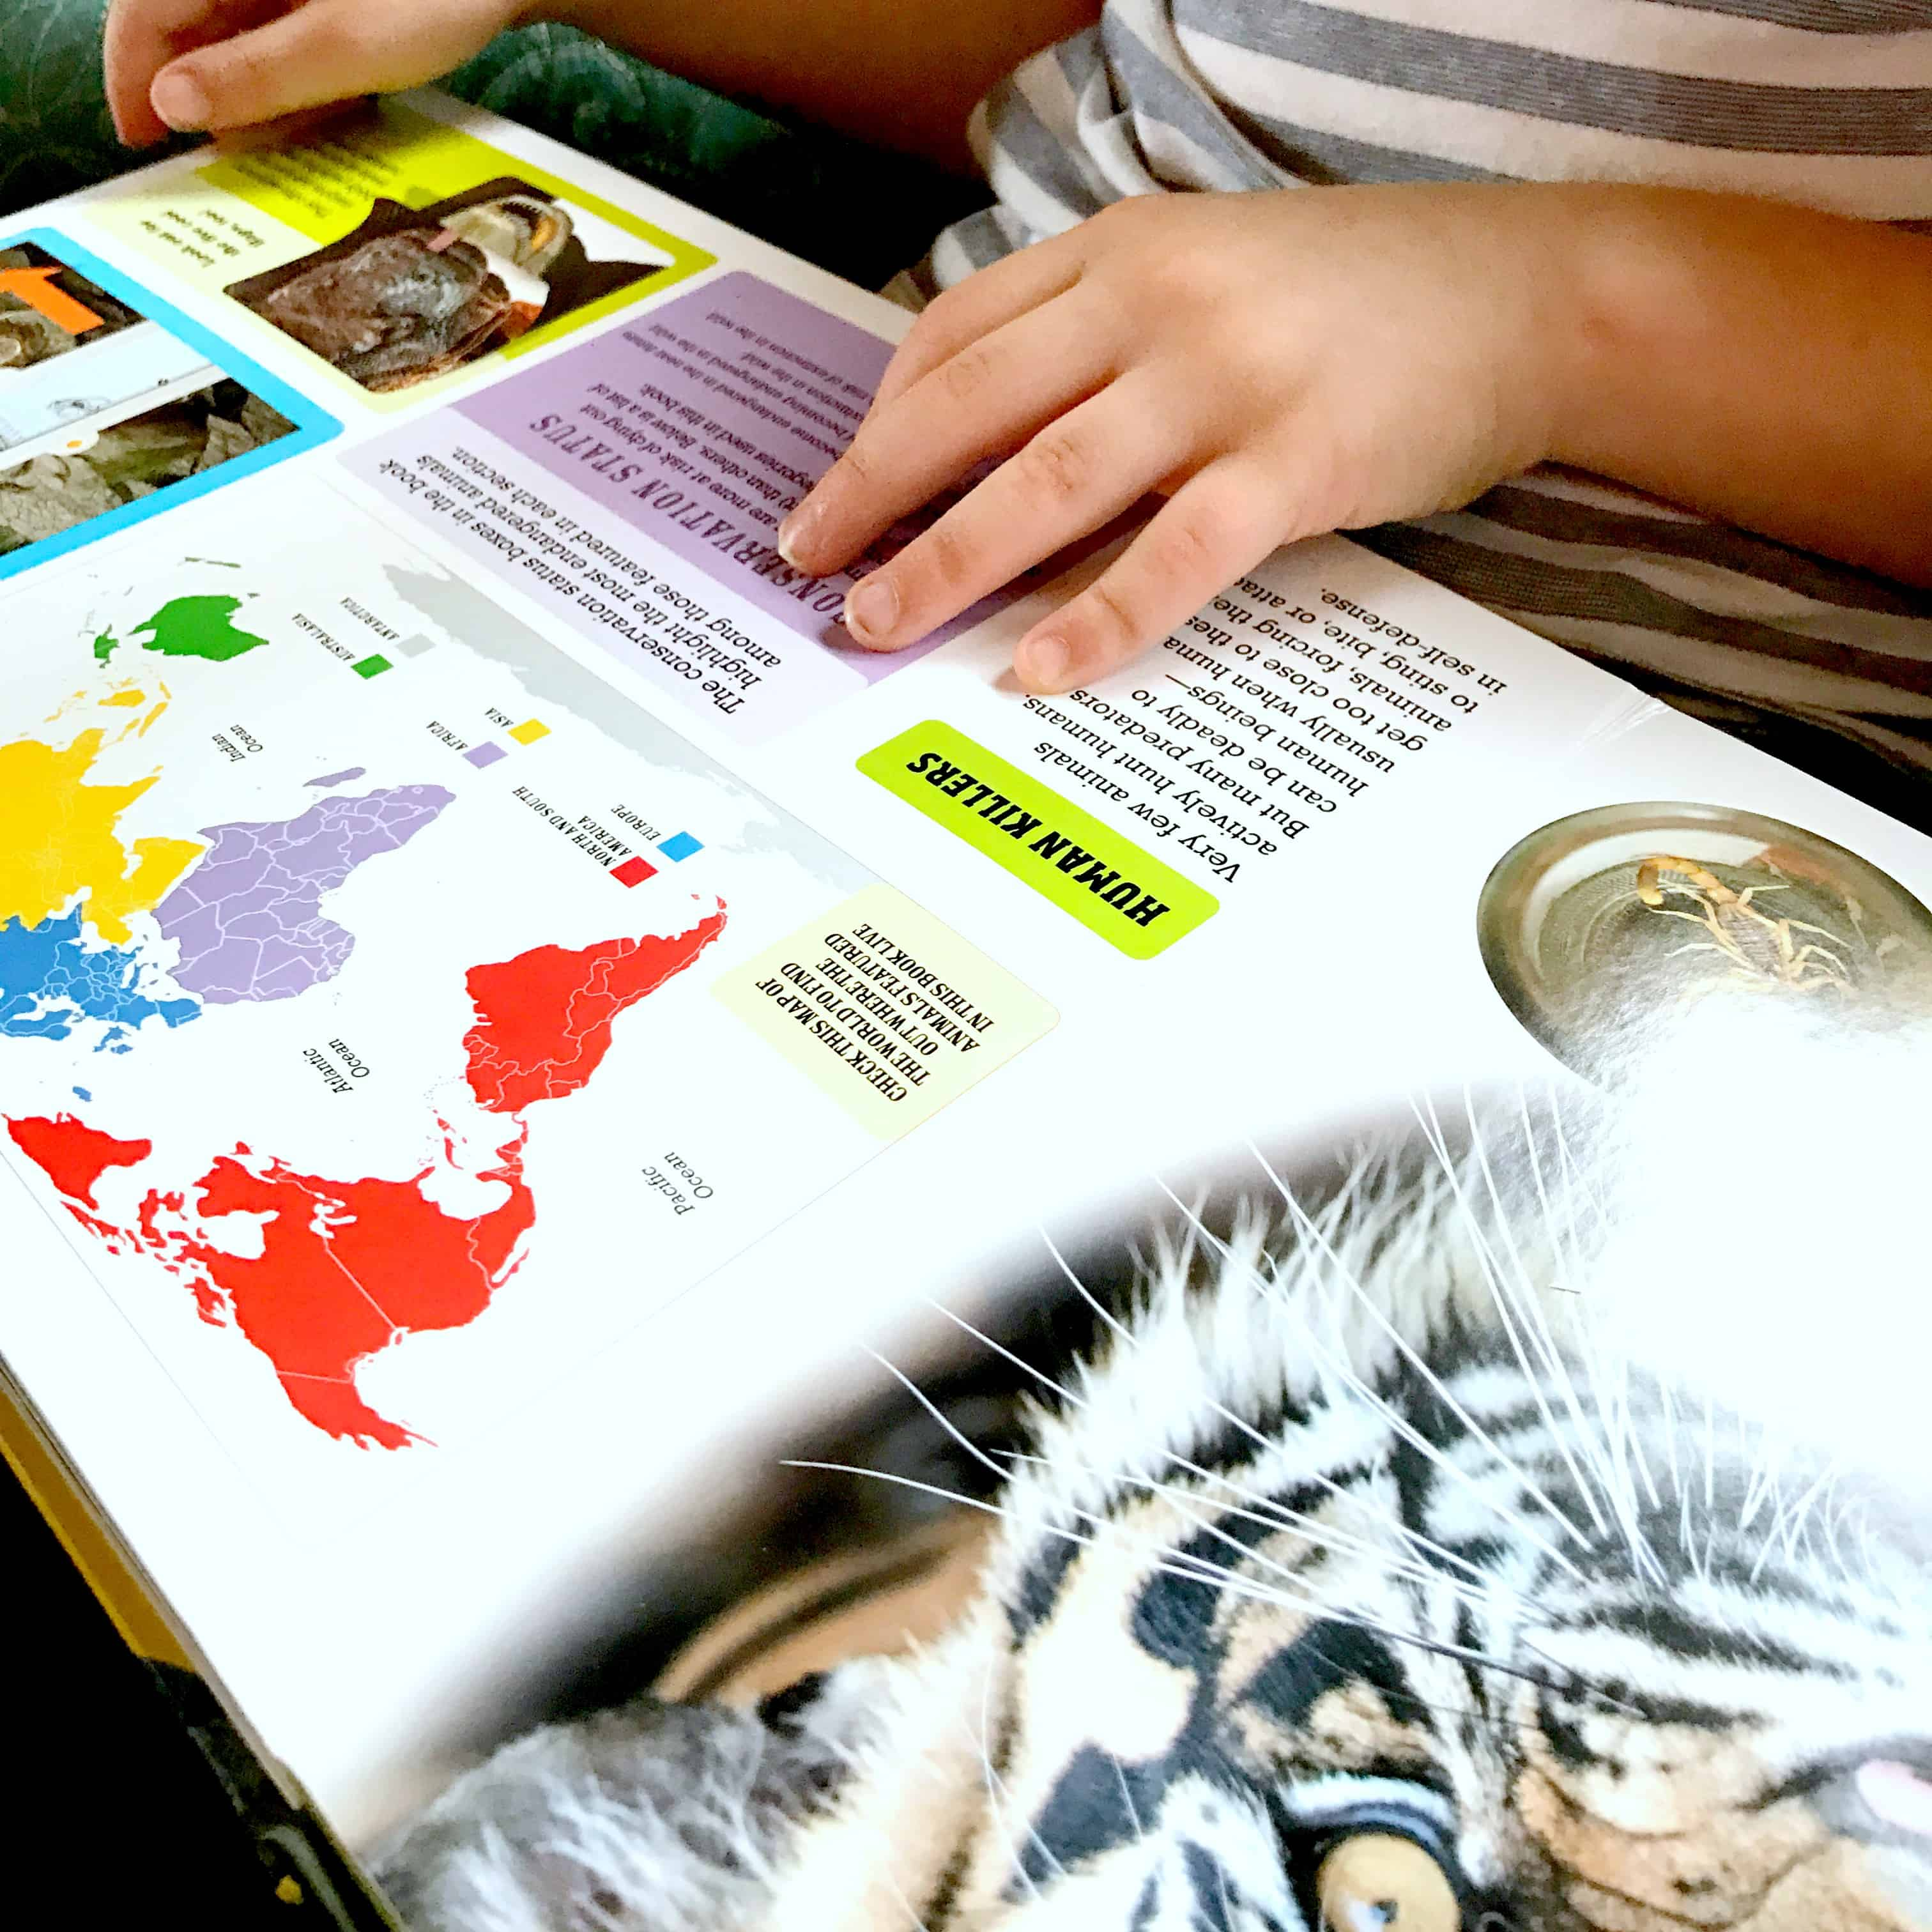 The Scanorama series is an amazing series of interactive books for animal lovers. They provide fun learning and an up-close view of awesome animals.